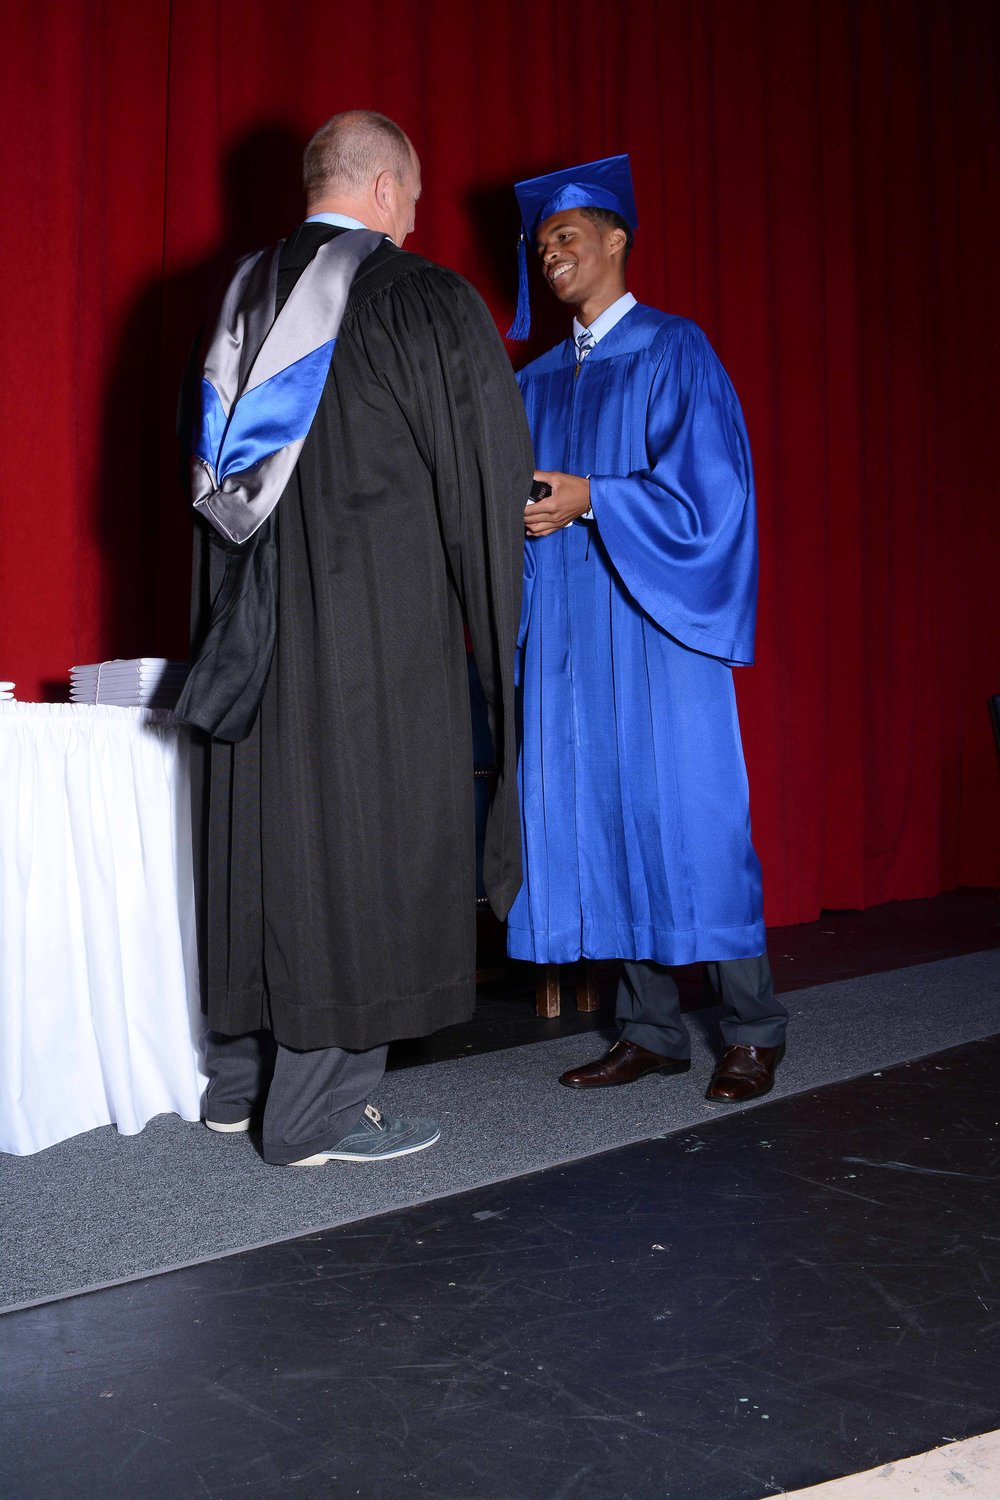 May14 Commencement161.jpg